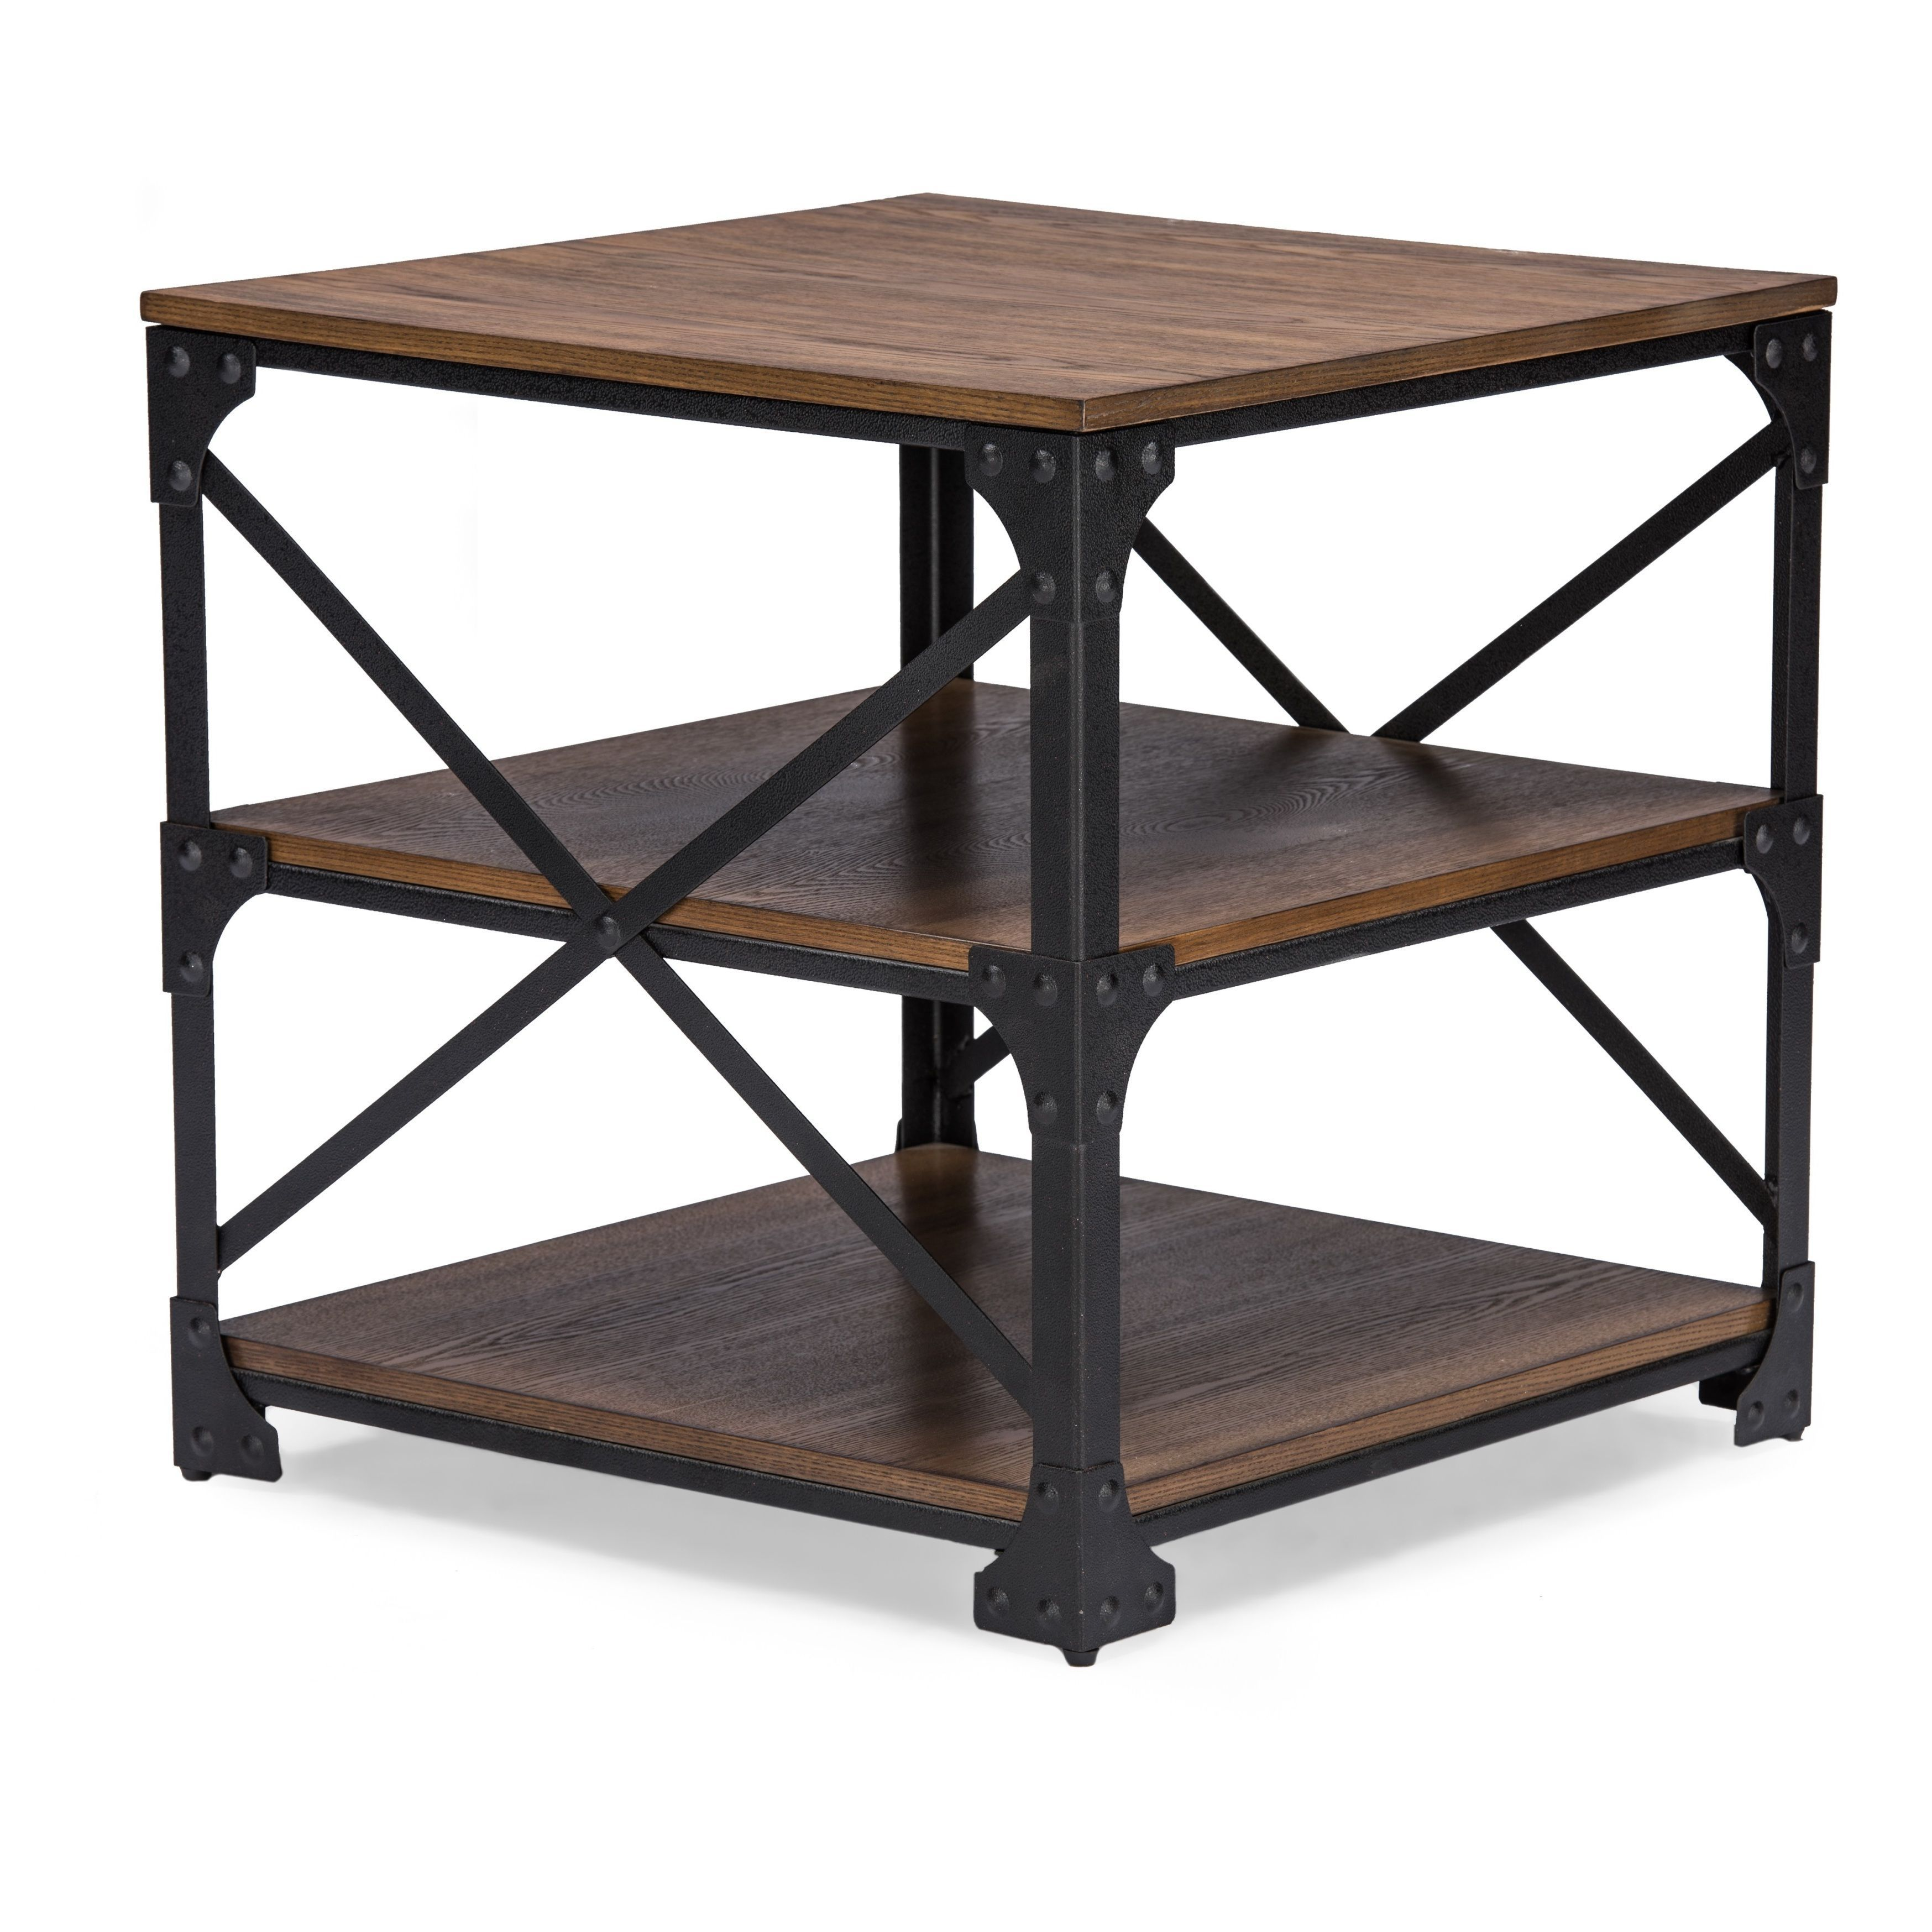 Iron Side Tables For Living Room Pairing Iron Metal Frame With Distressed Finishing Wood